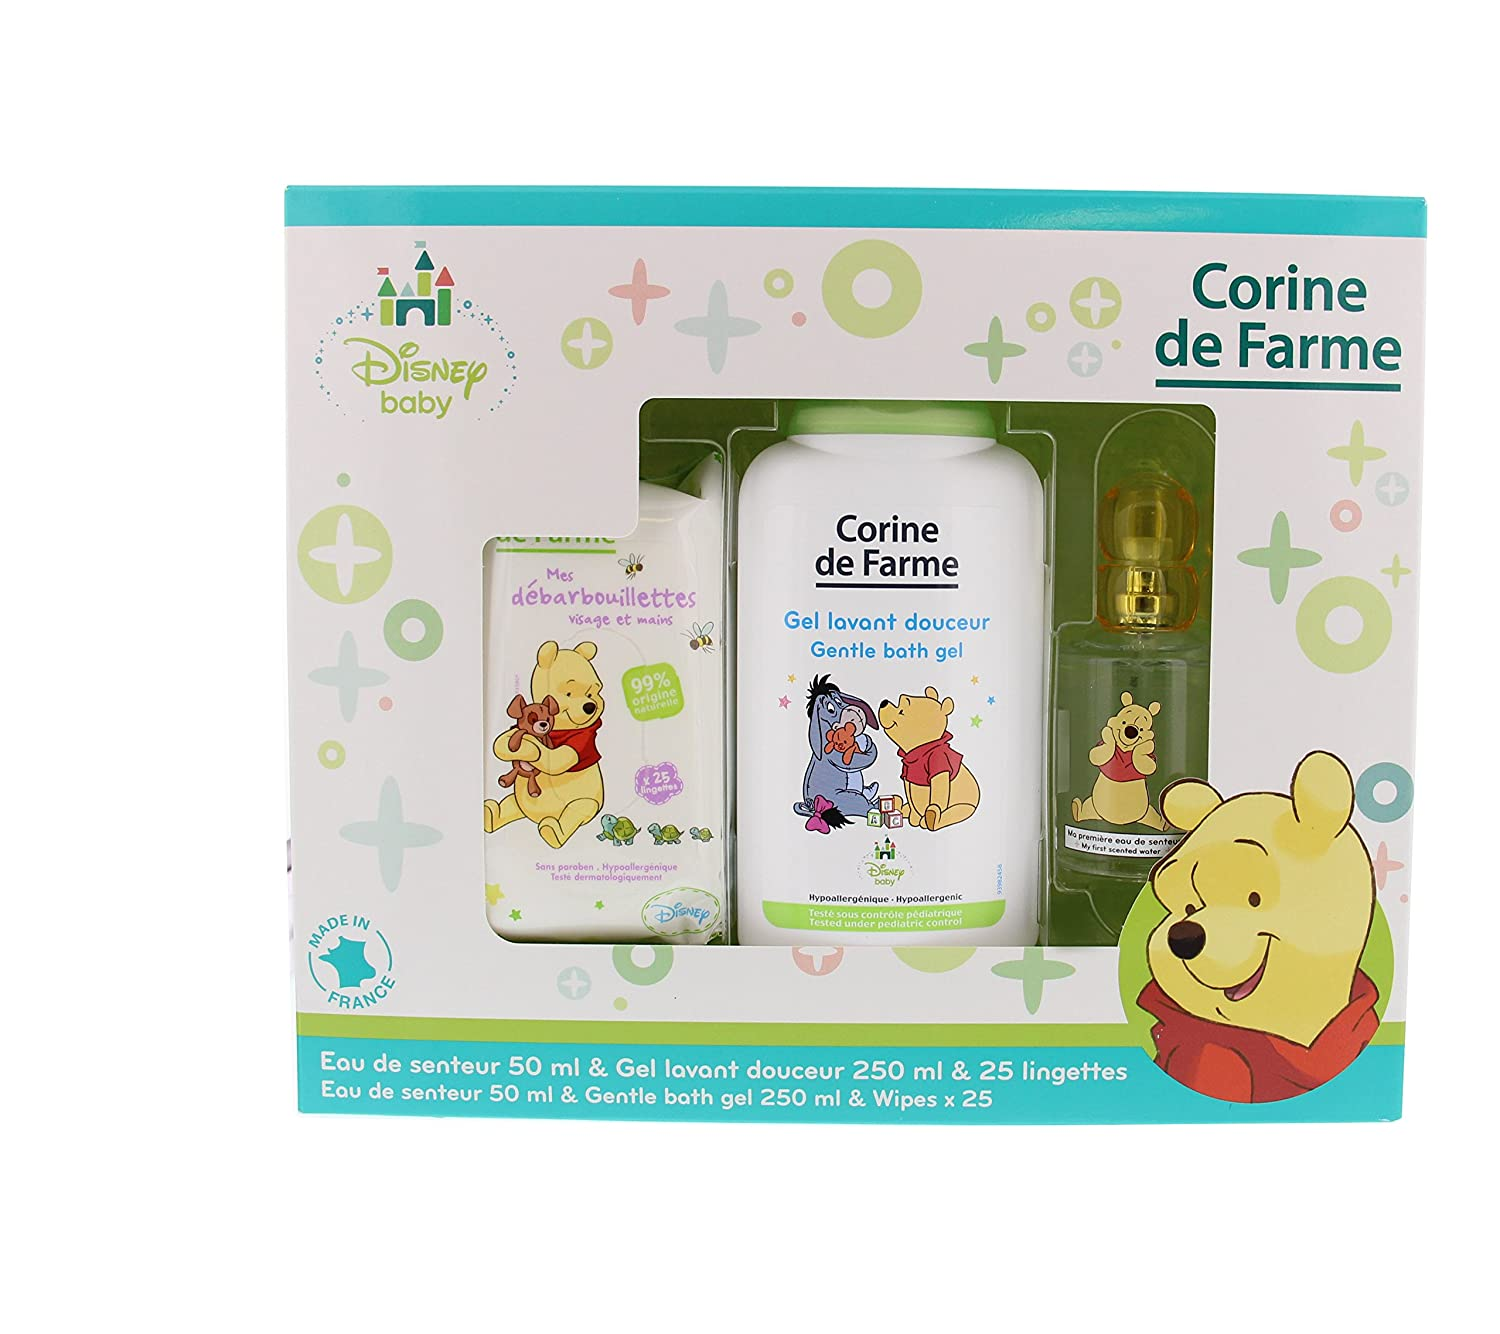 Corine di Farme Set Winnie the Pooh Salviette + Gel Lavant + Acqua di Senteur Disney Baby 50 ml Corine de Farme 096355